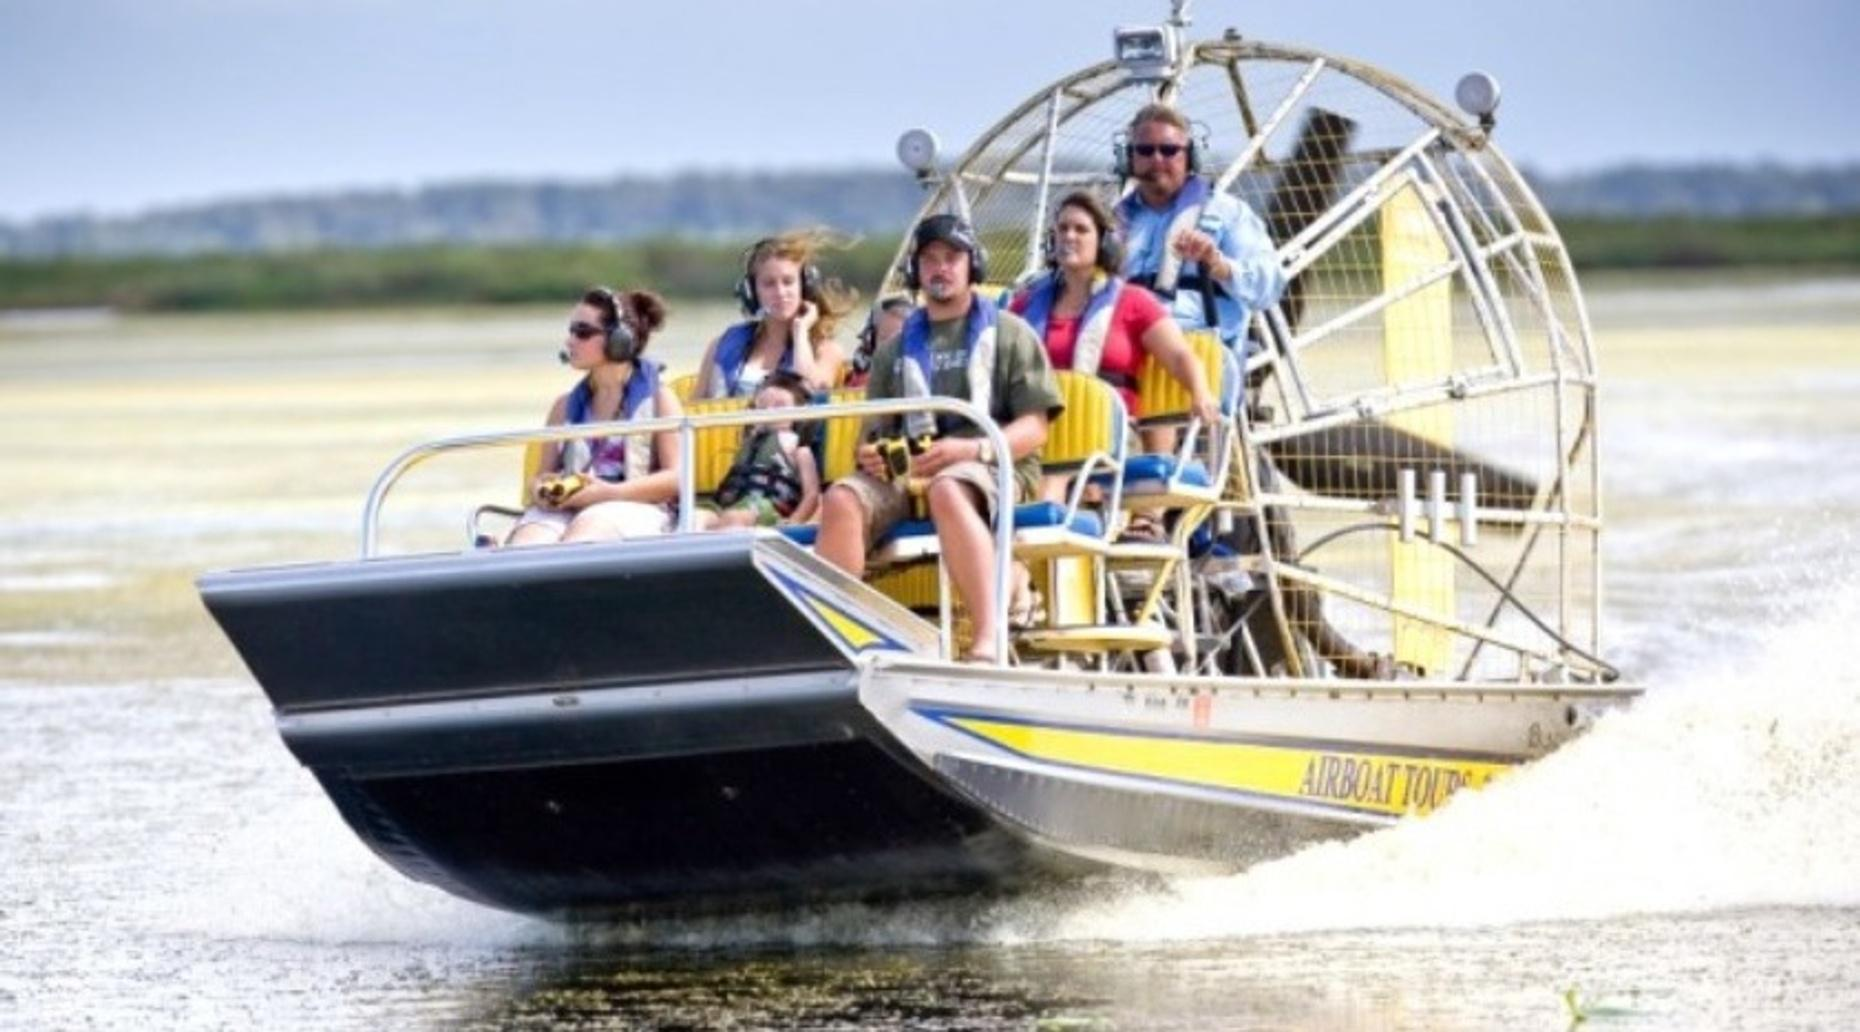 Everglades Airboat Tour & Alligator Show in Miami